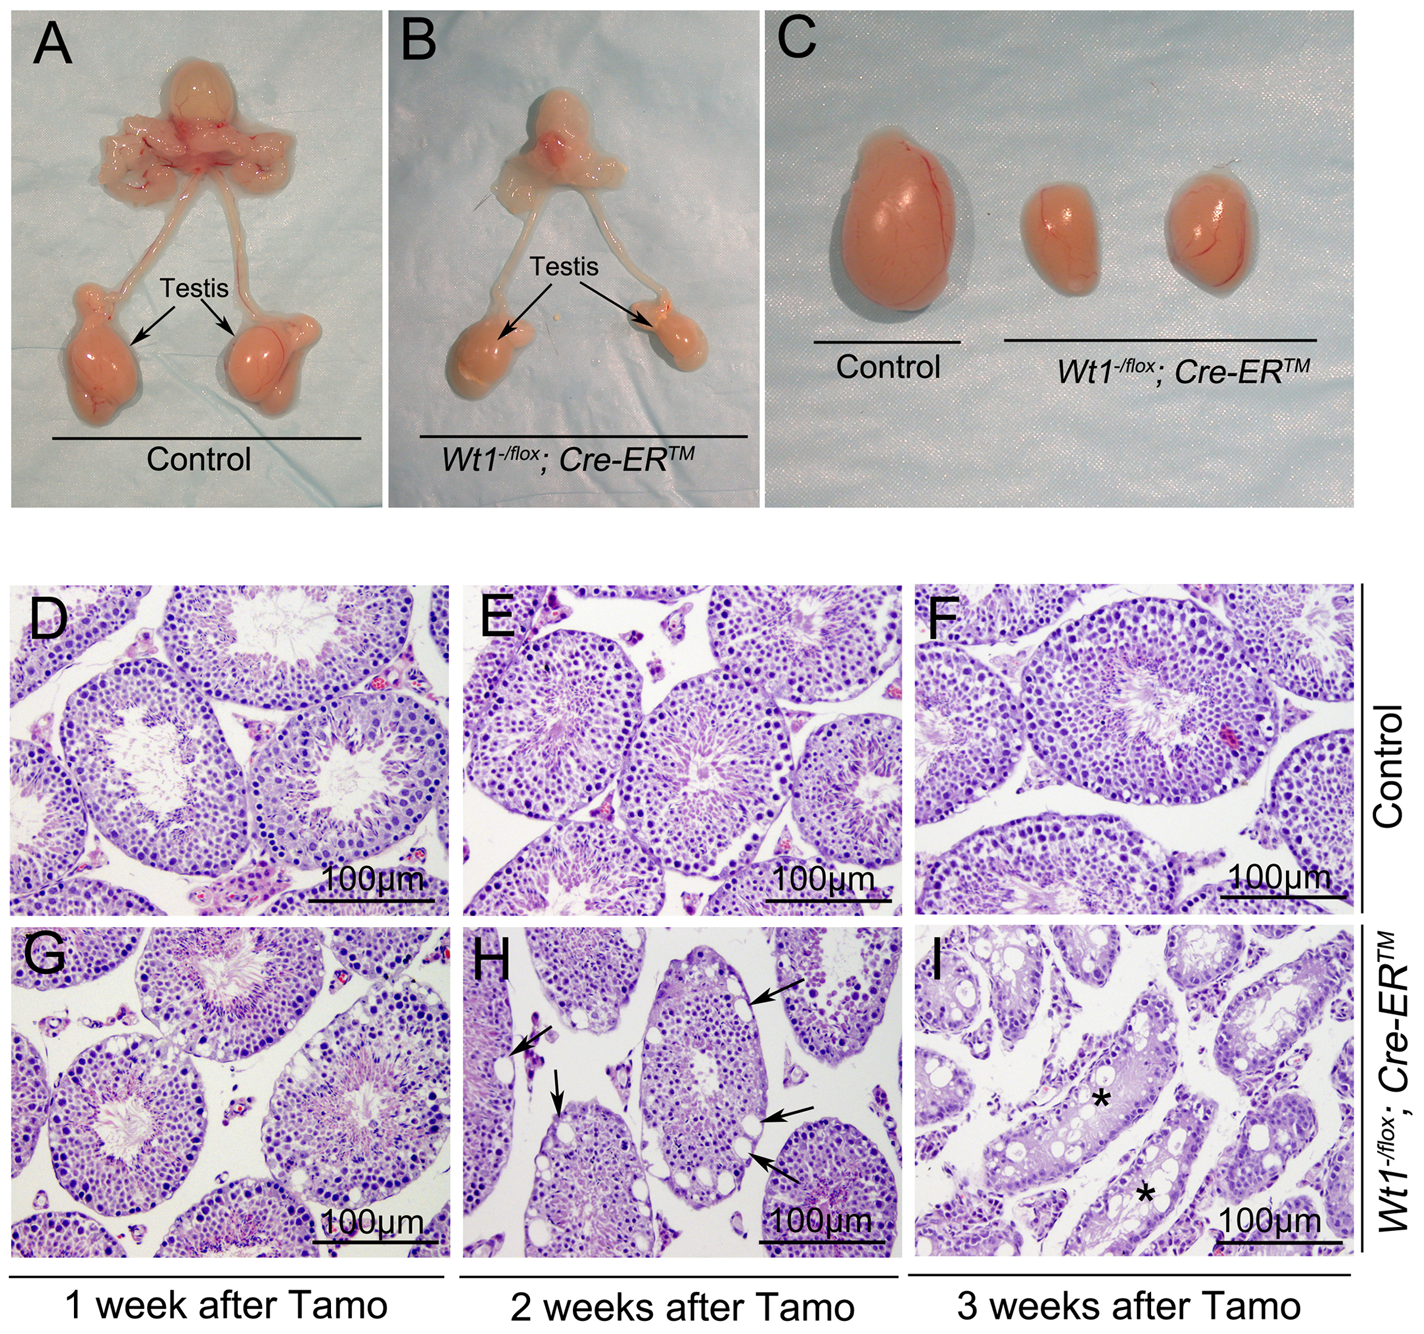 Inactivation of <i>Wt1</i> results in seminiferous tubule atrophy and testis hypoplasia.